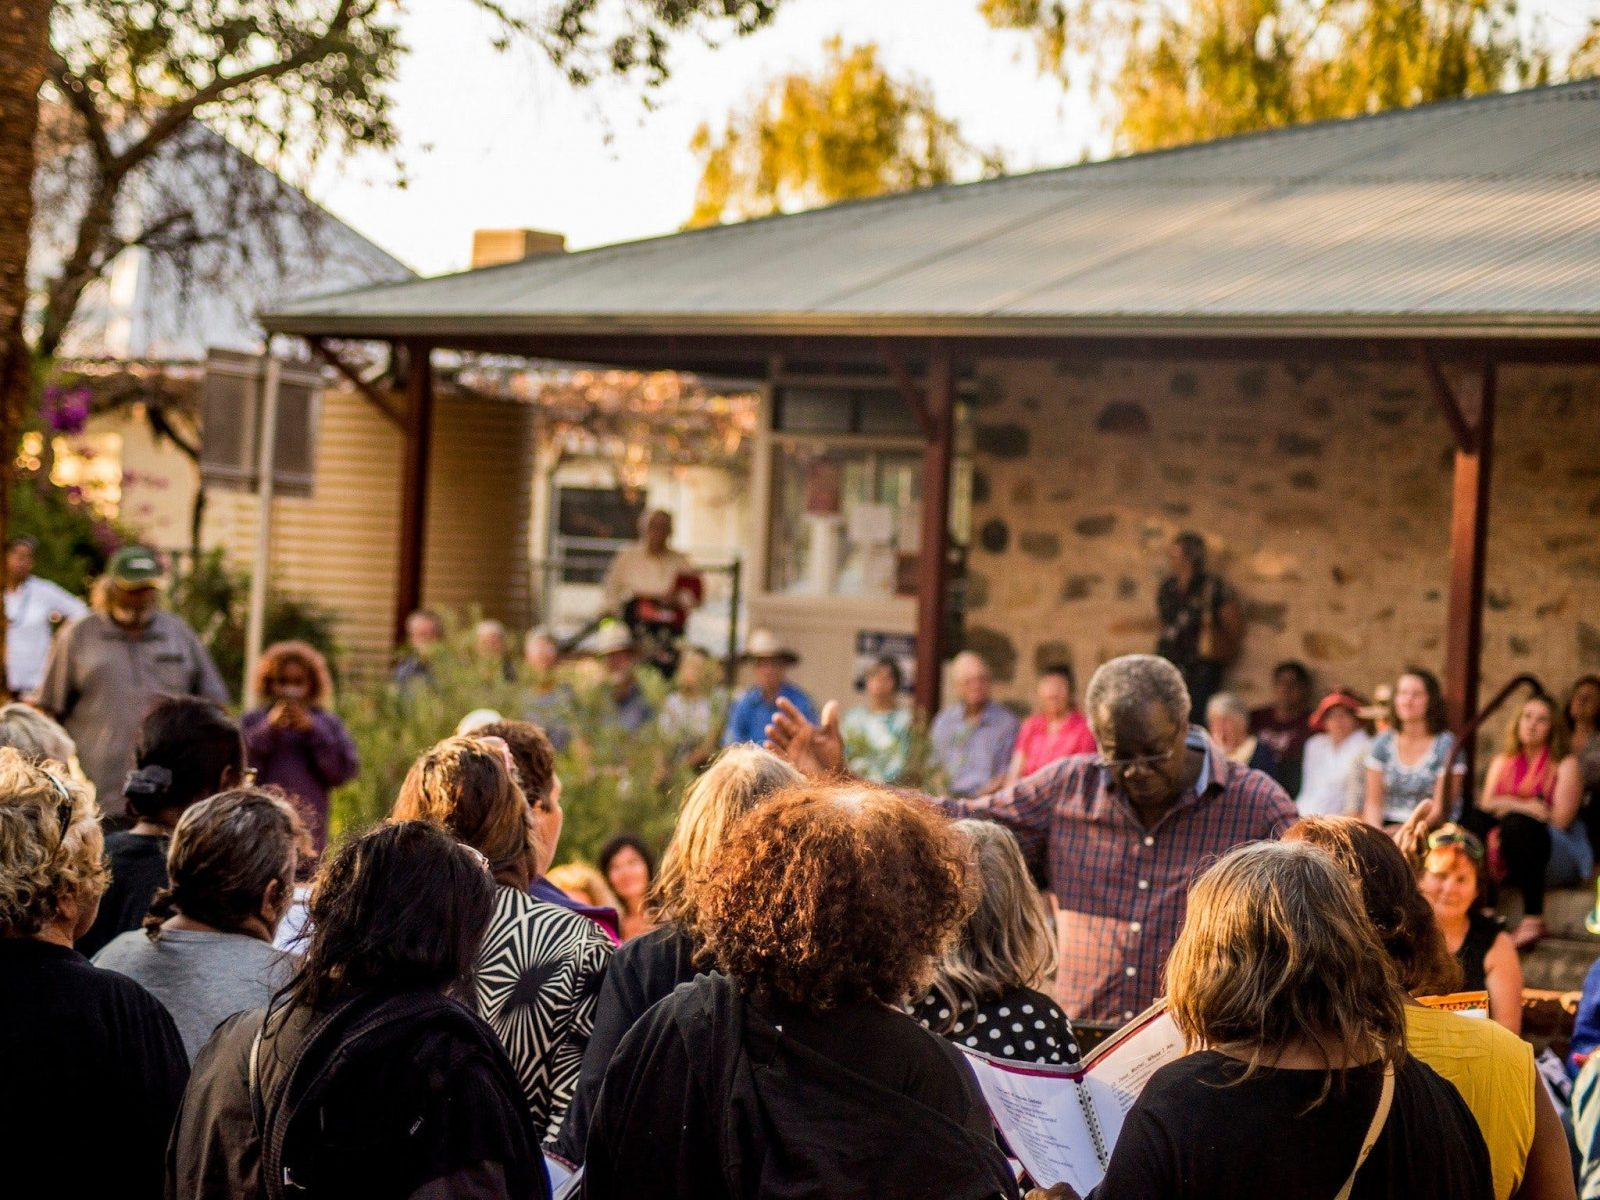 Desert Song Festival, Central Australia, Alice Springs, Free, event, show, music, Northern Territory